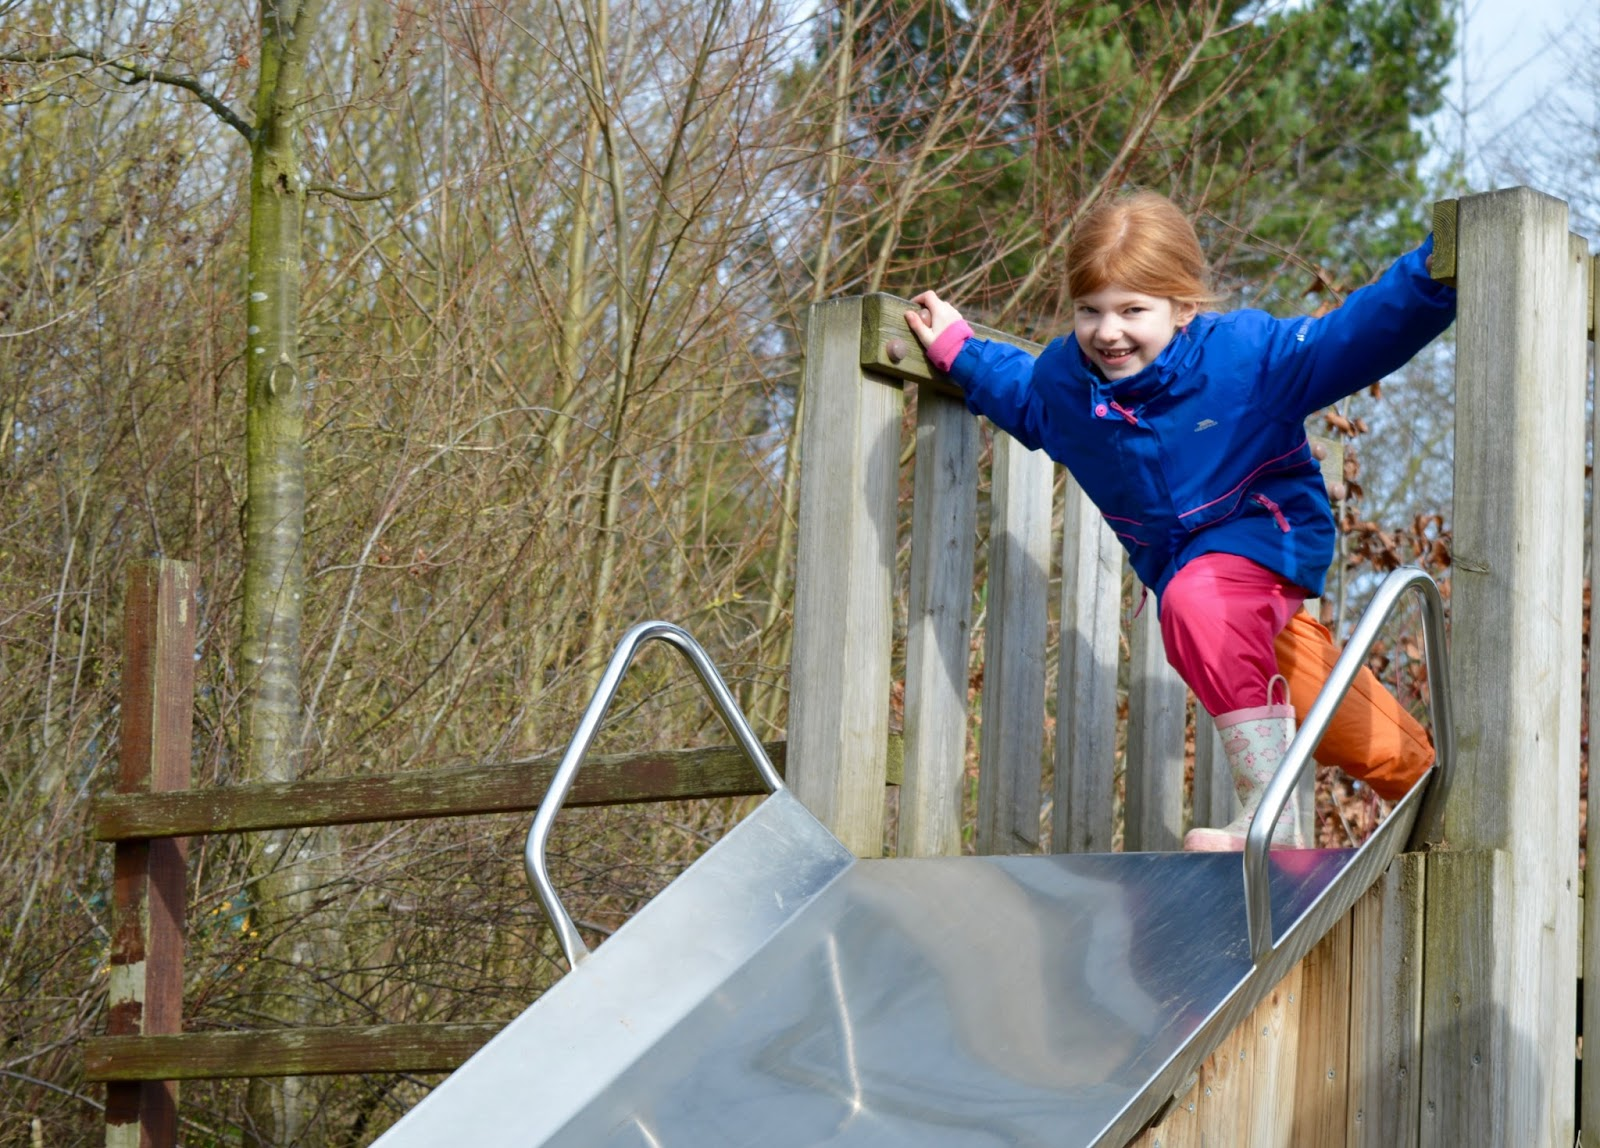 WWT Washington Wetland Centre | An Accessible North East Day Out for the Whole Family - slide in park